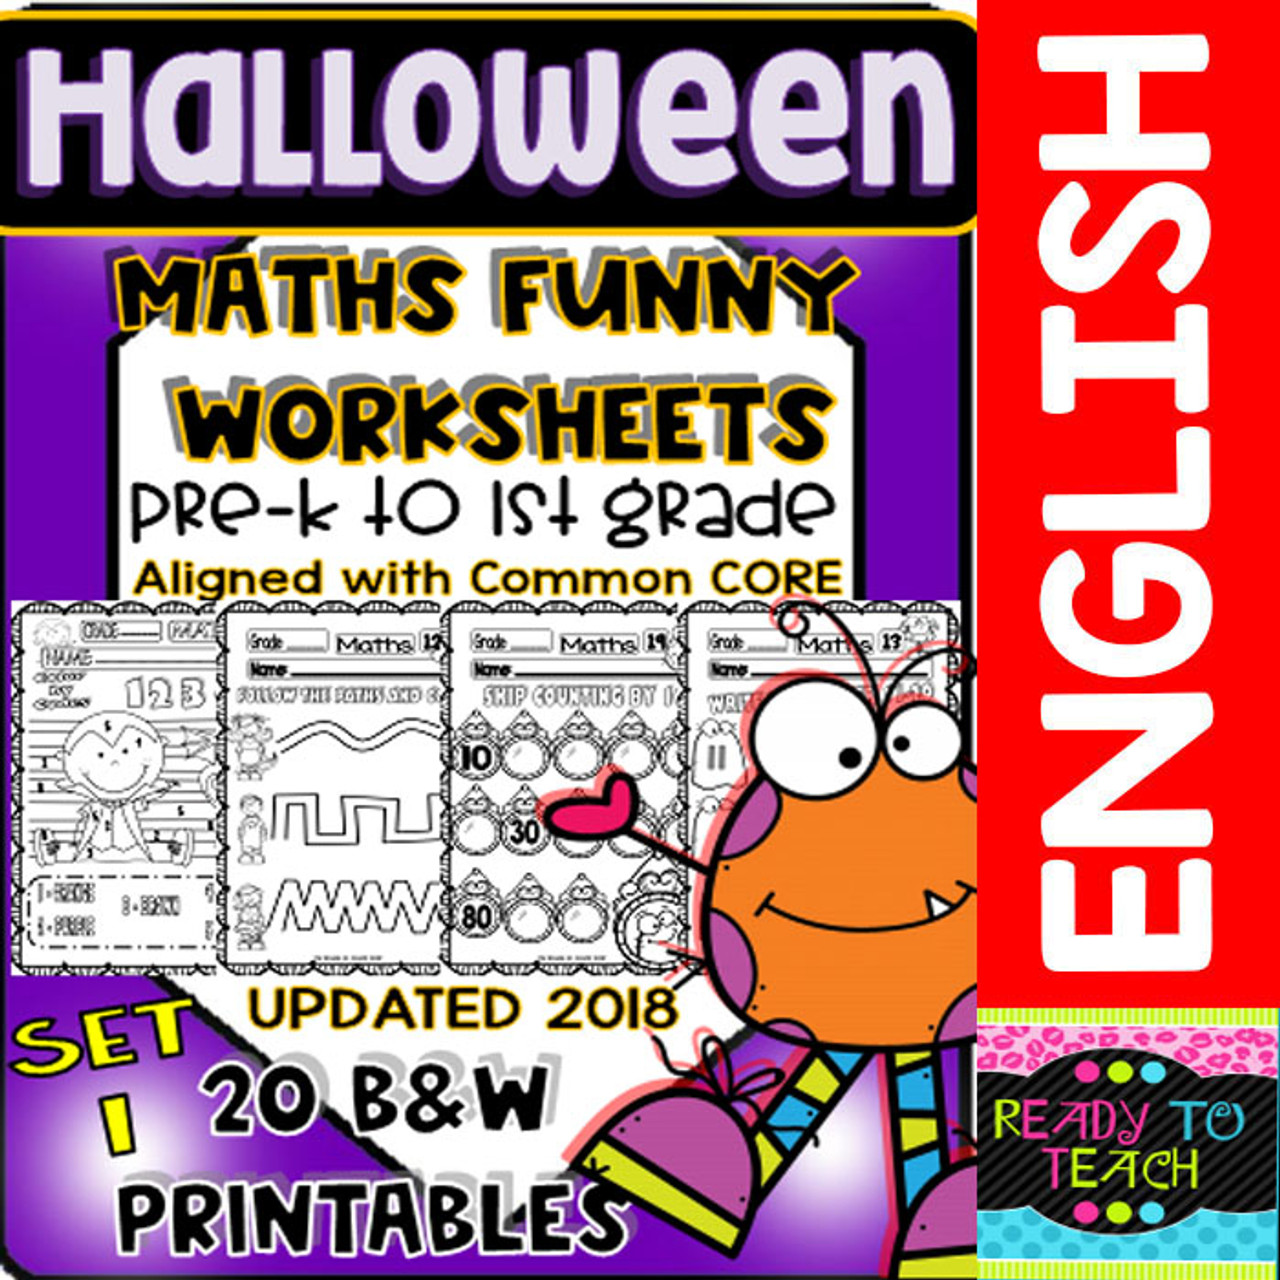 hight resolution of Halloween Maths Funny Worksheets - 20 B\u0026W Printables - Set 1 - Amped Up  Learning